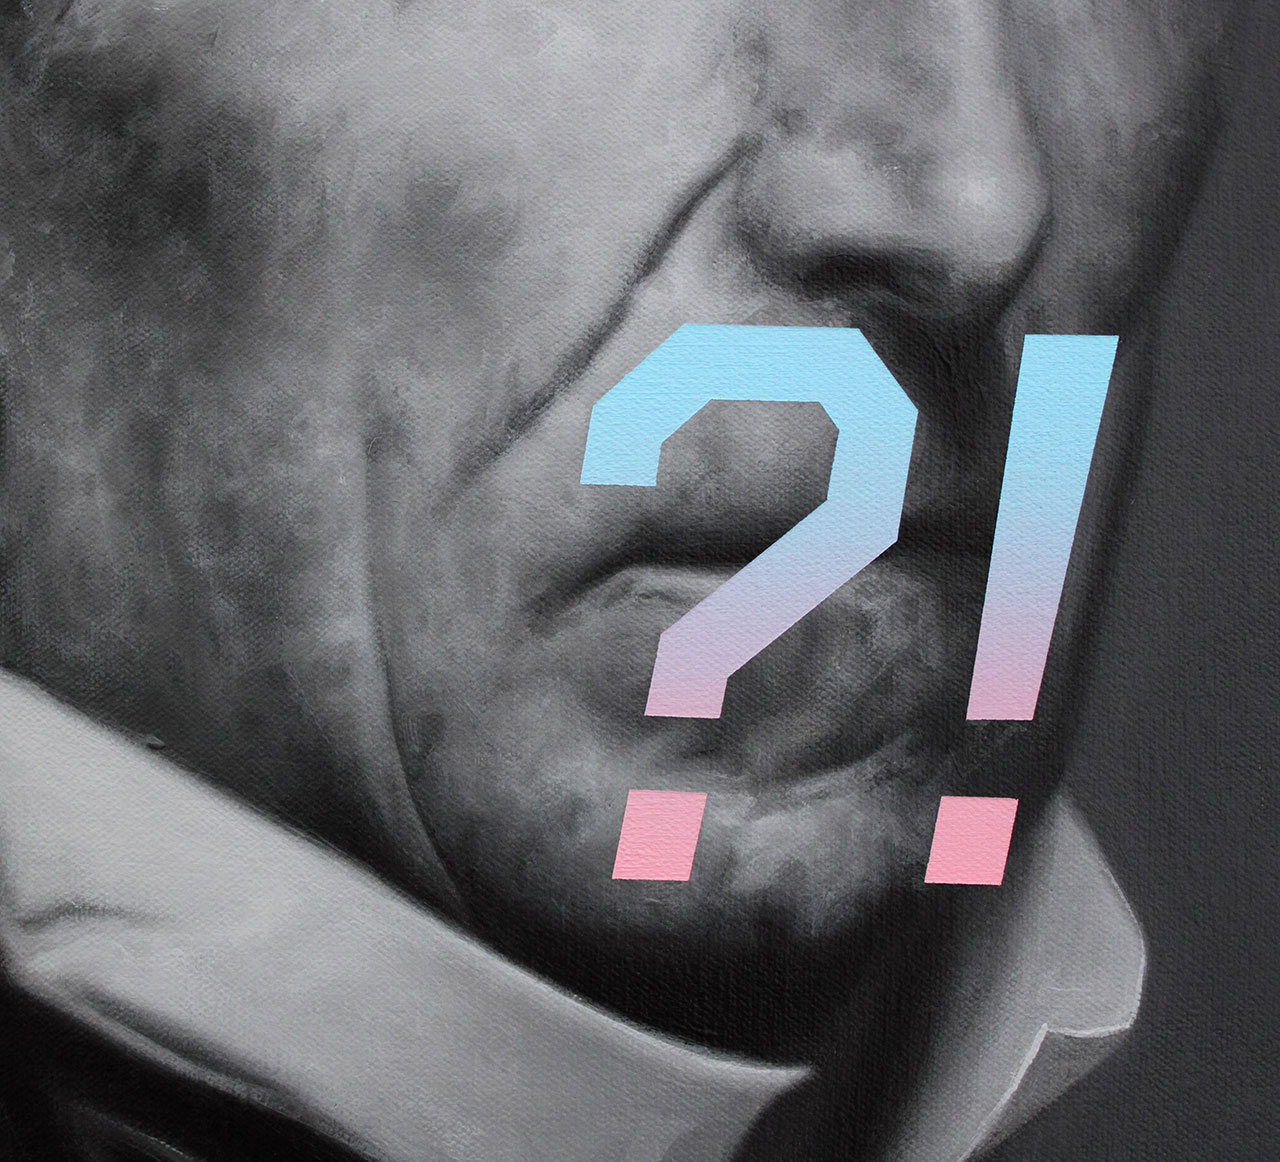 Shawn Huckins, John Tyler's Expression Of Surprise, Confusion, or Shock (detail), acrylic on canvas, 20 x 16 in (51 x 41 cm), 2016.